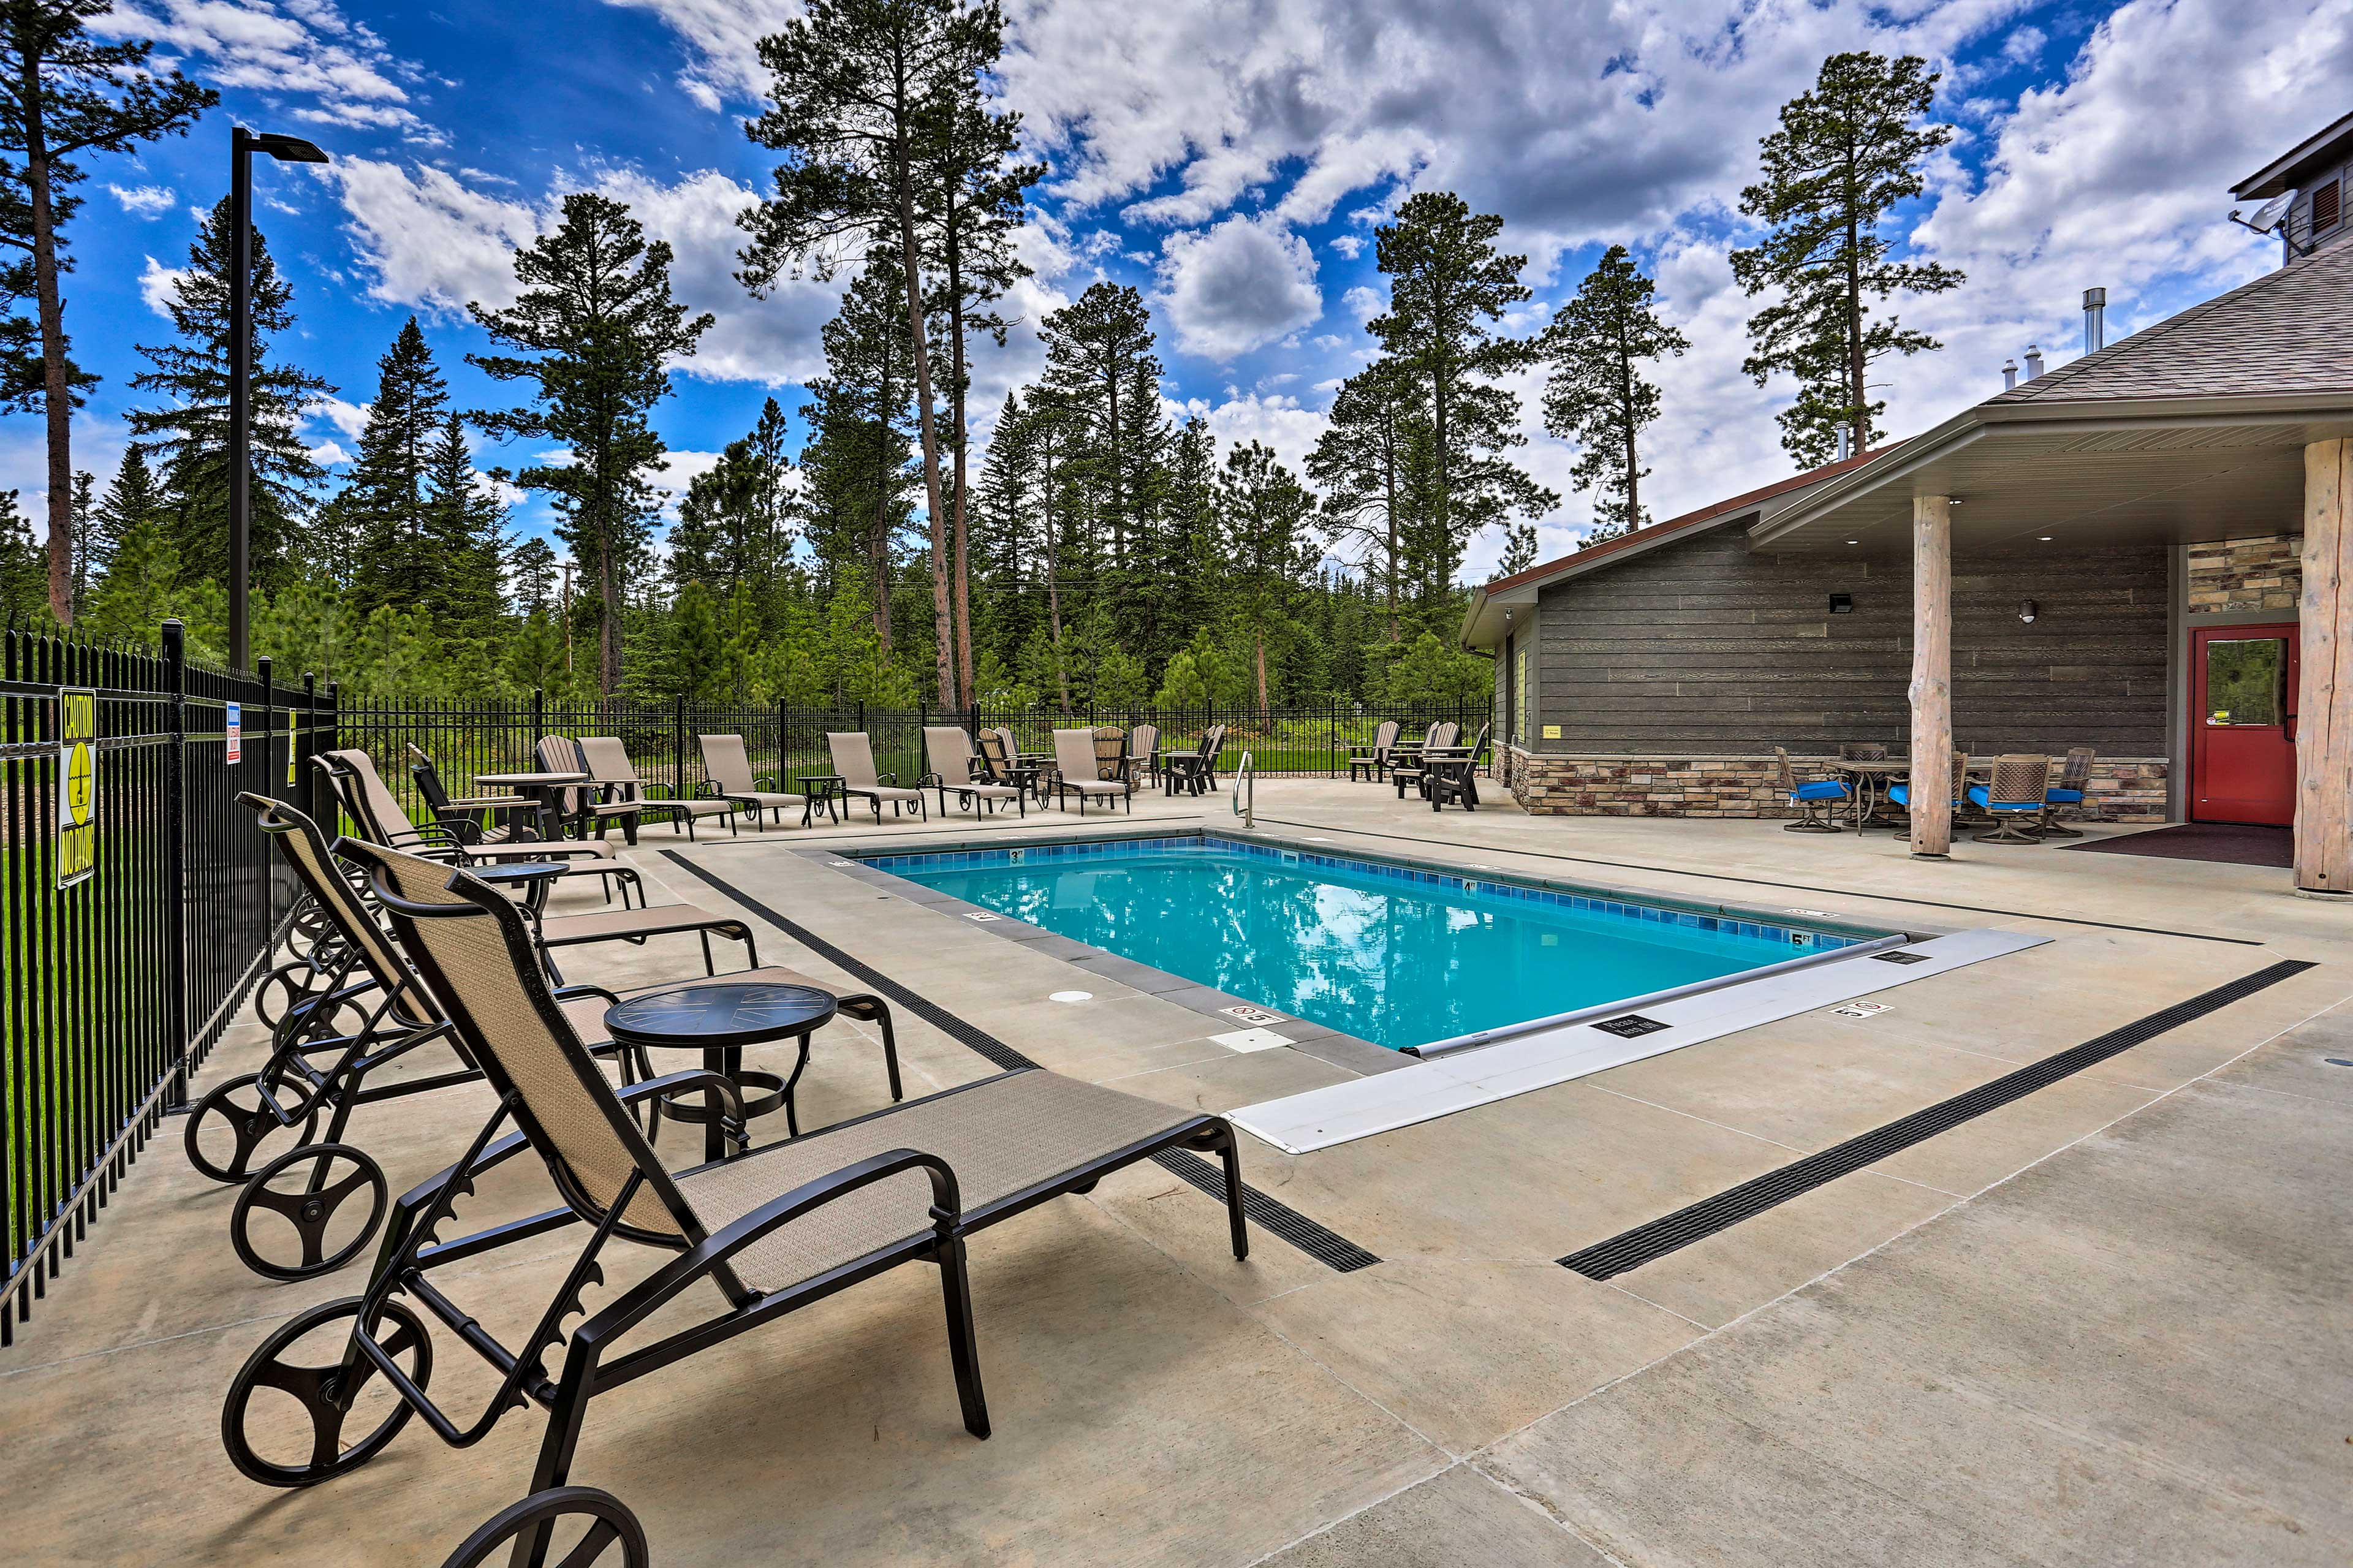 The pool is the ideal spot to lounge away the day.